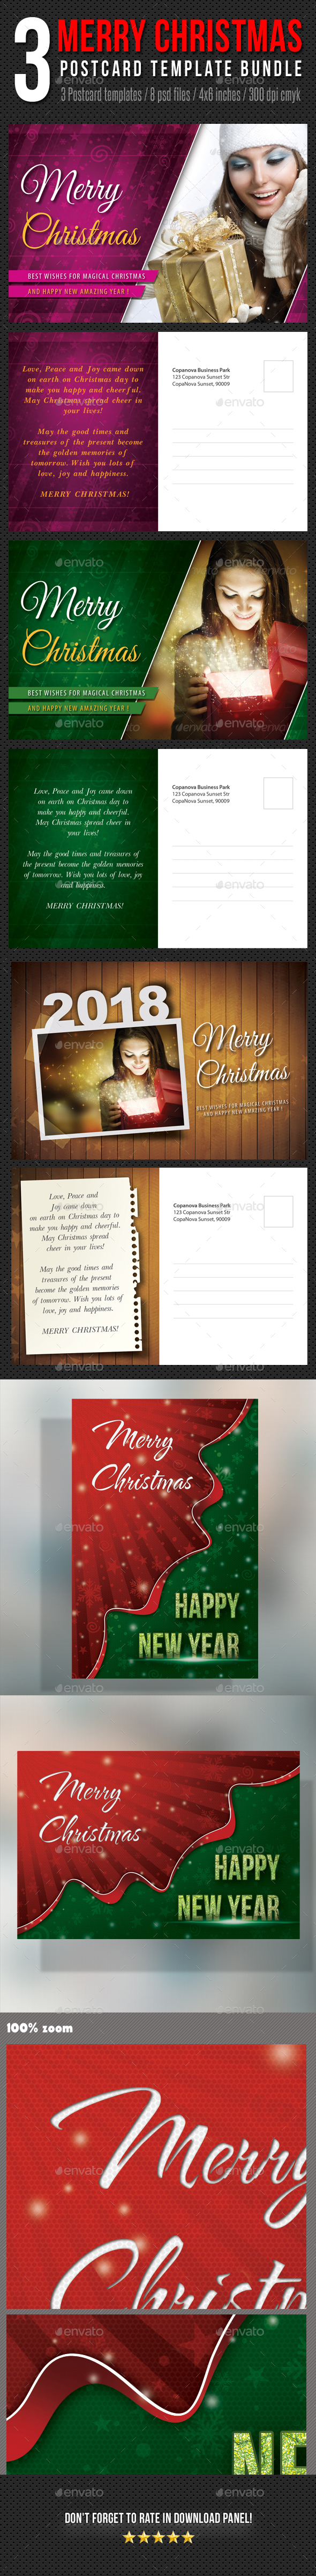 3 in 1 Merry Christmas Postcard Template Bundle - Holiday Greeting Cards